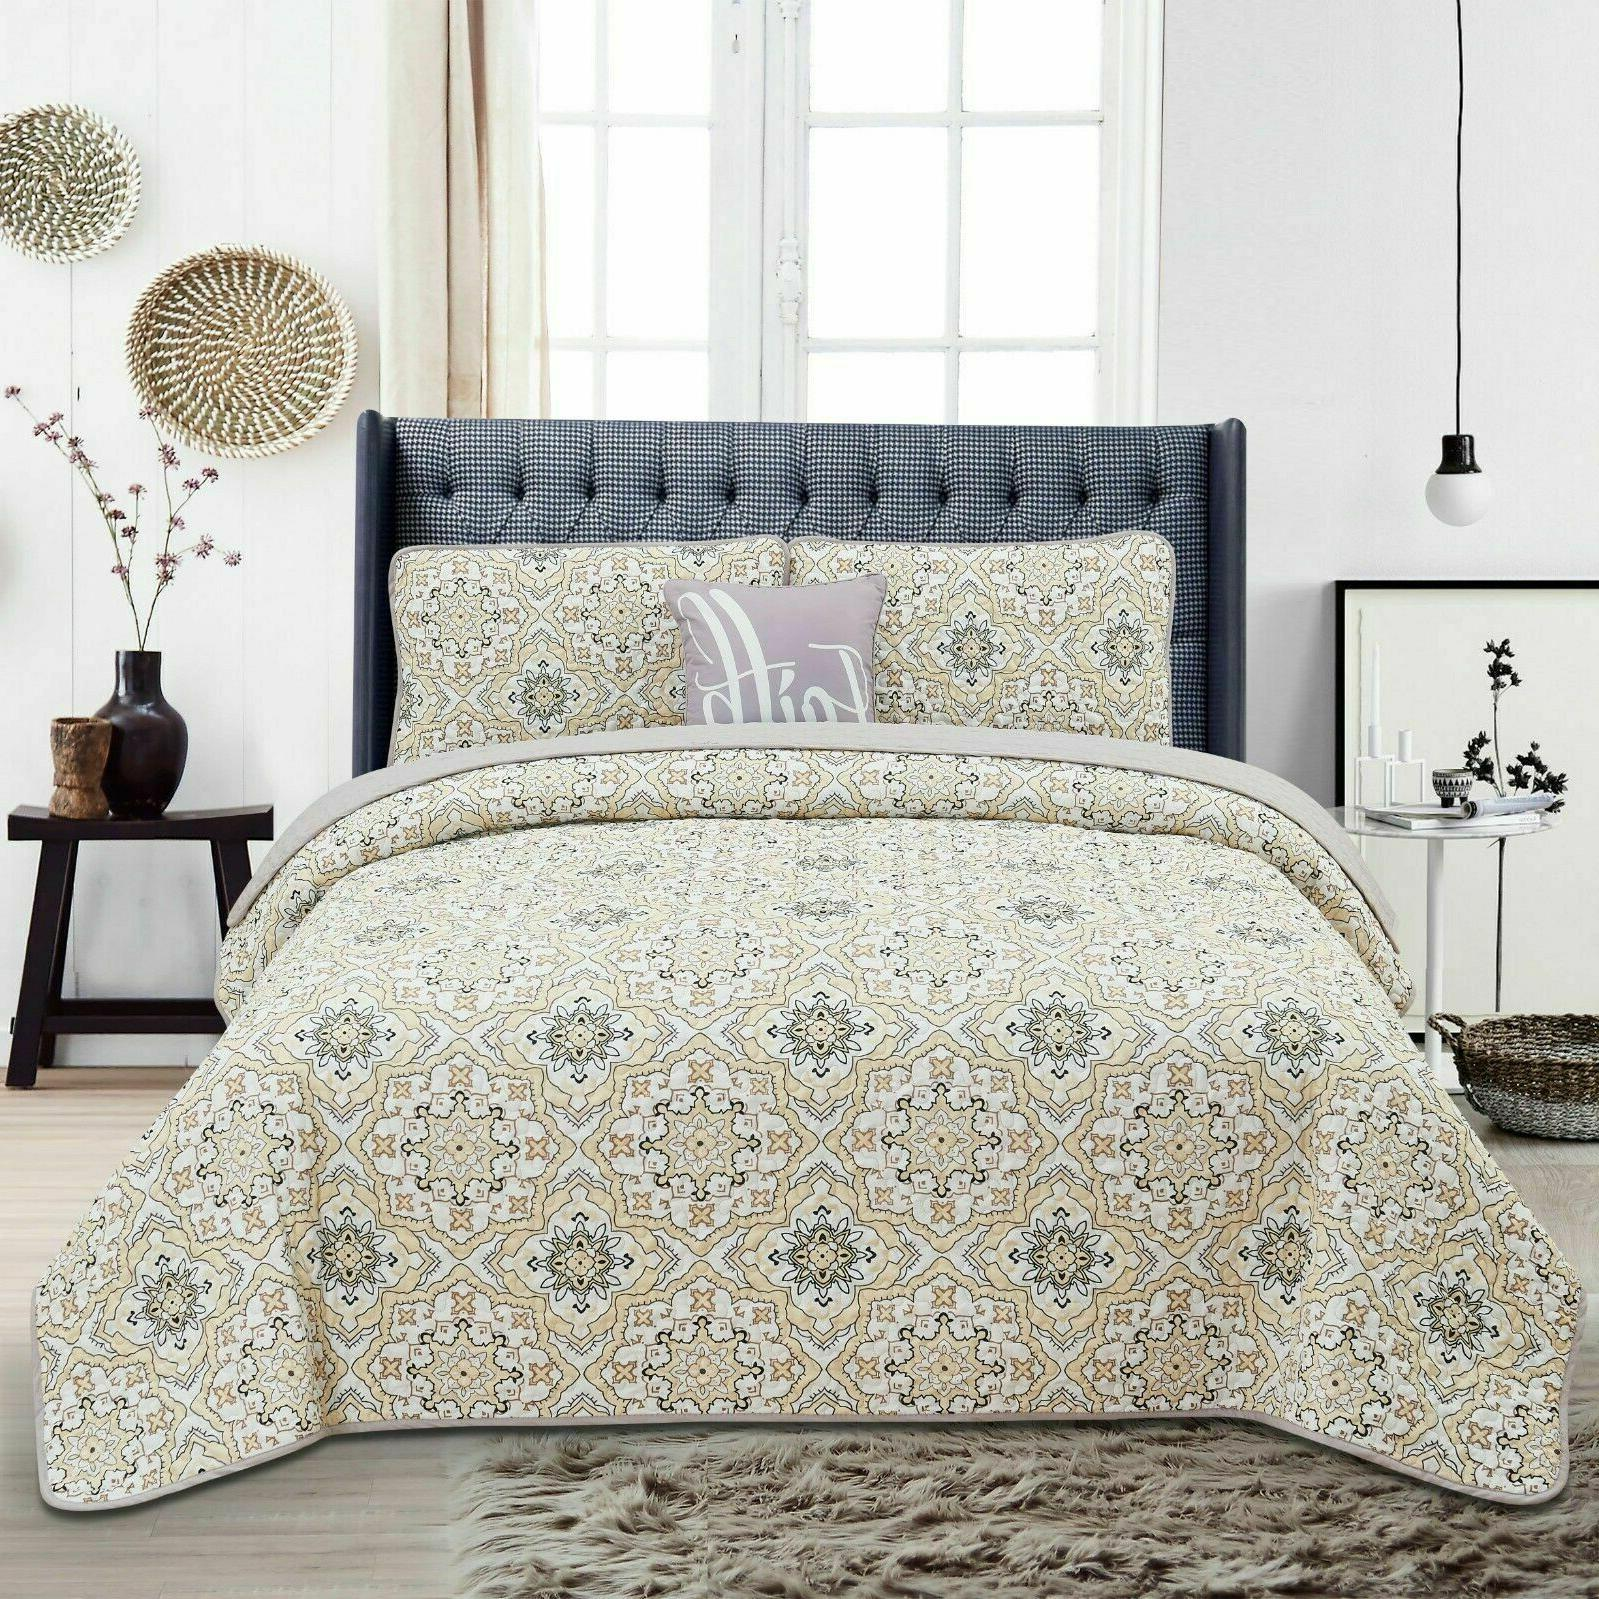 Queen Quilt Bedding Printed Quilt Set King Bedding Set